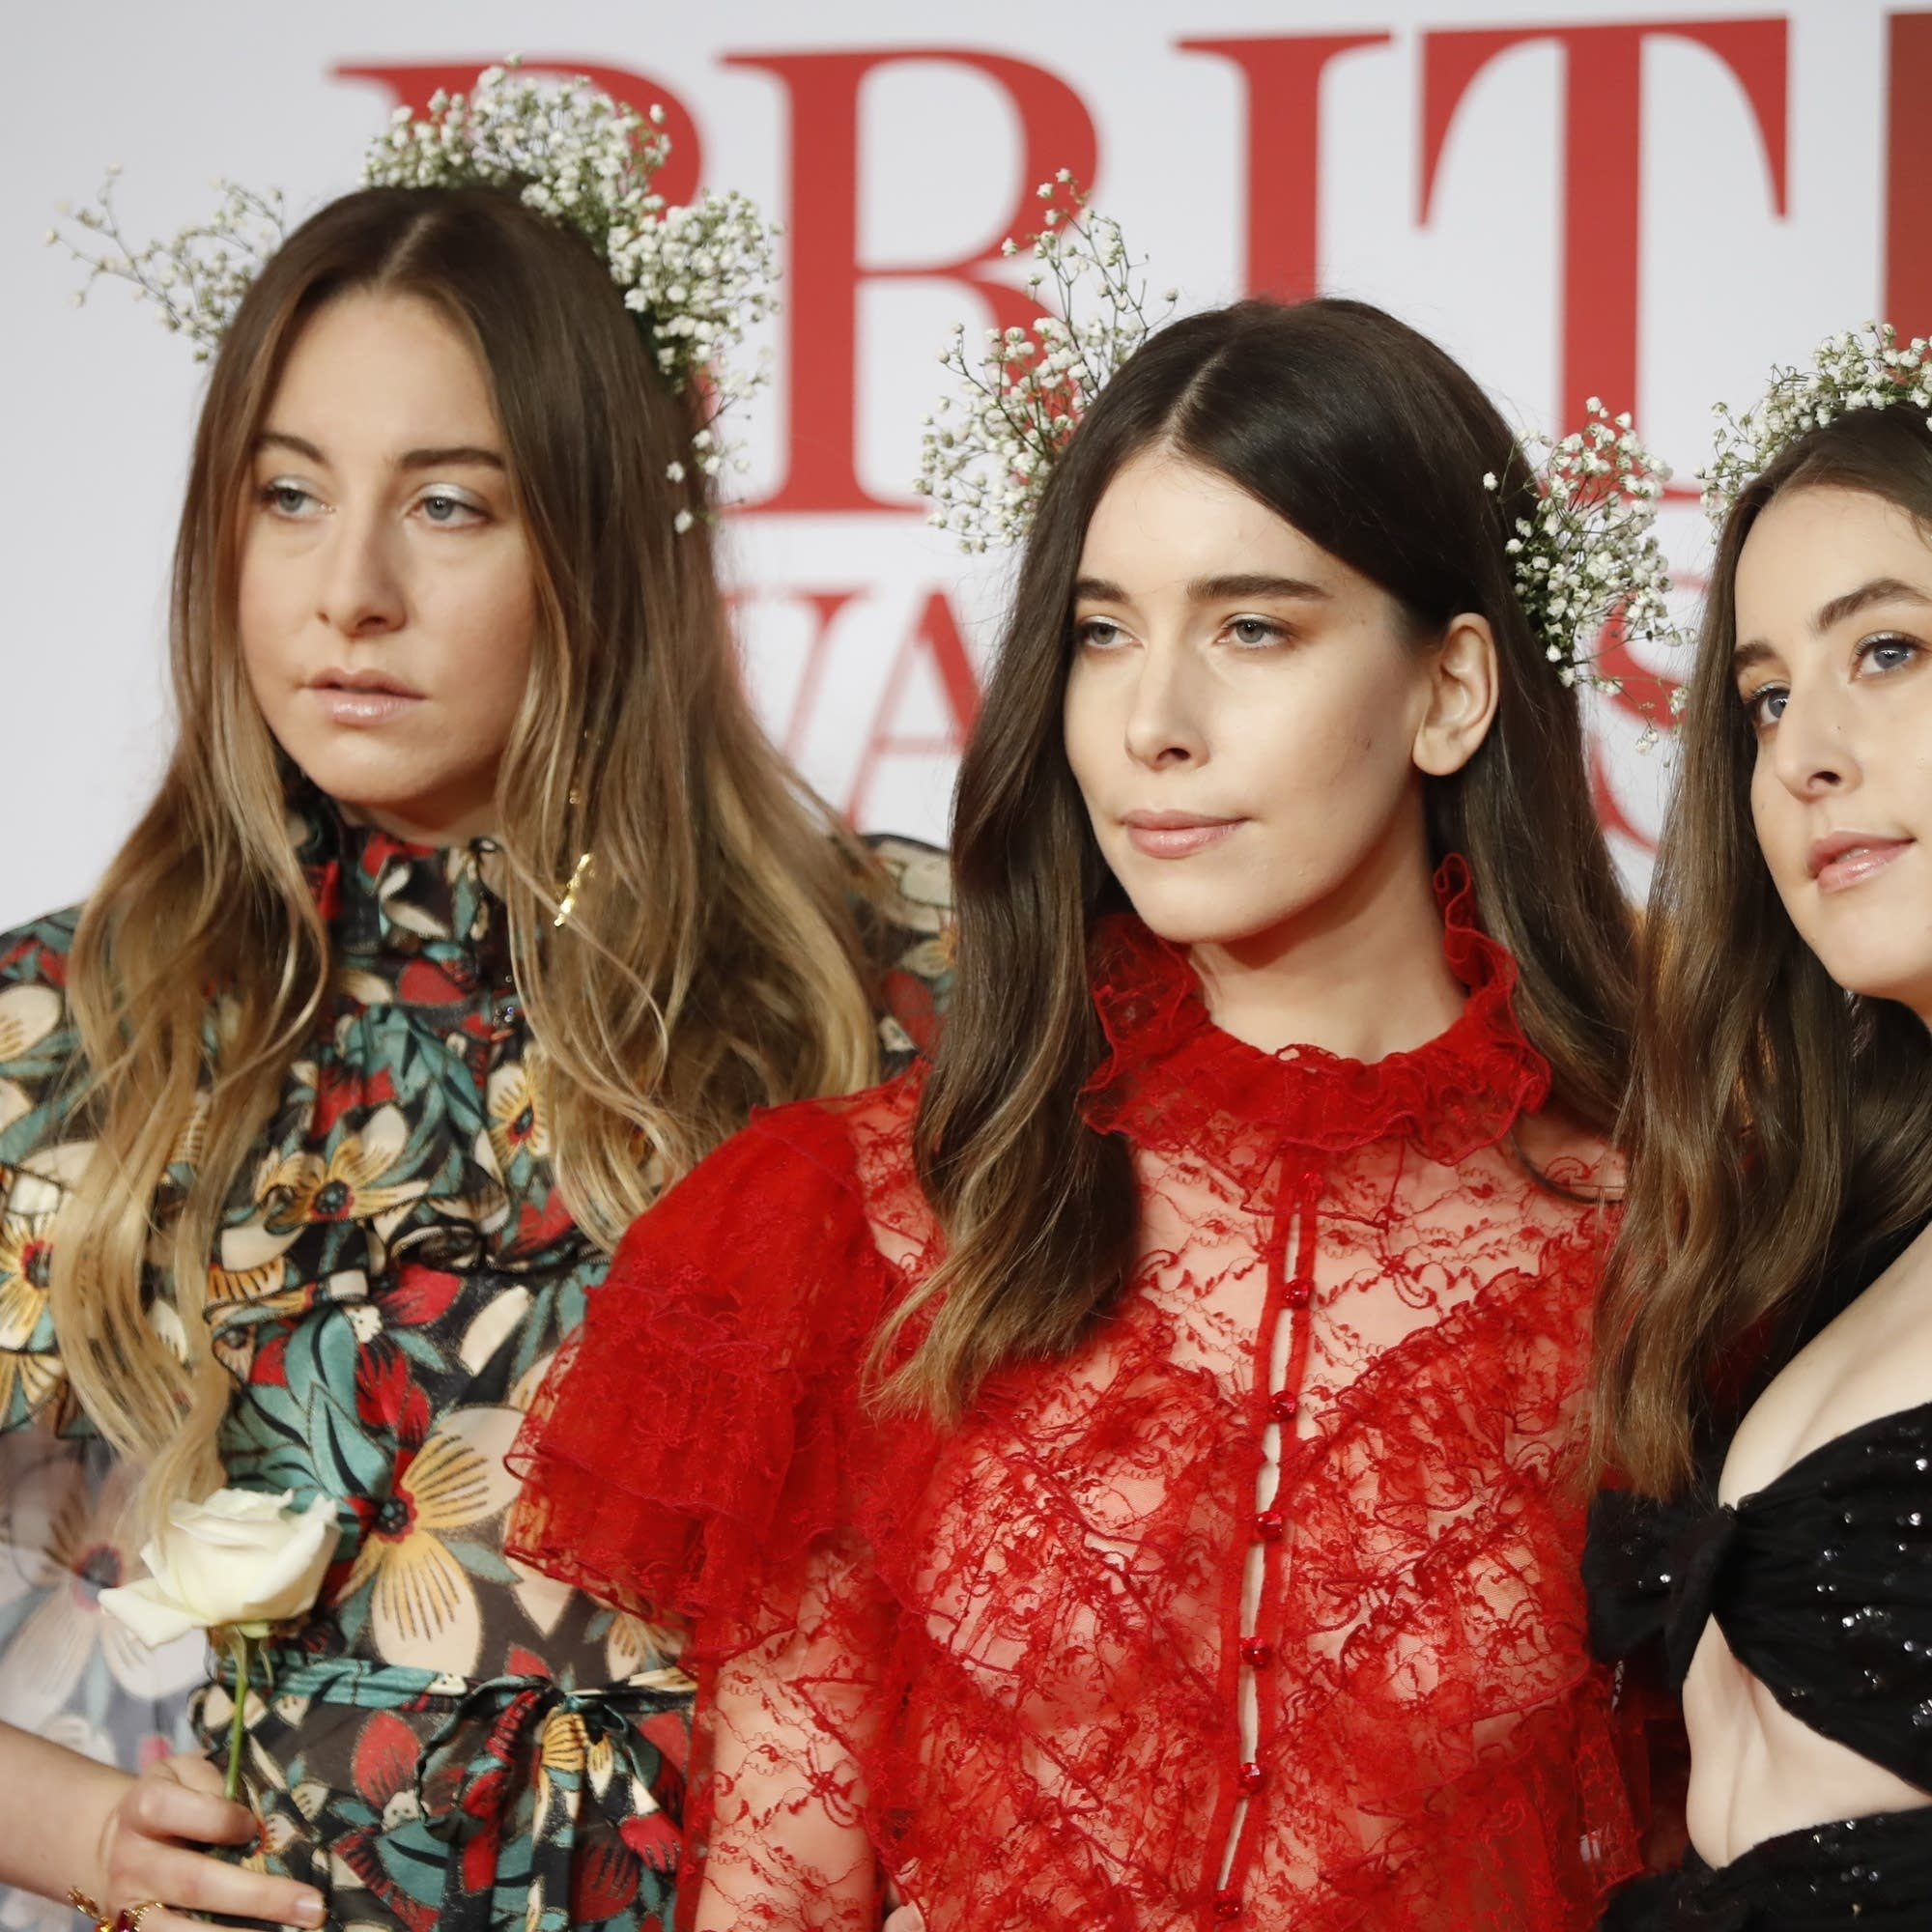 l-r: Este, Danielle, and Alana Haim at the BRIT Awards.